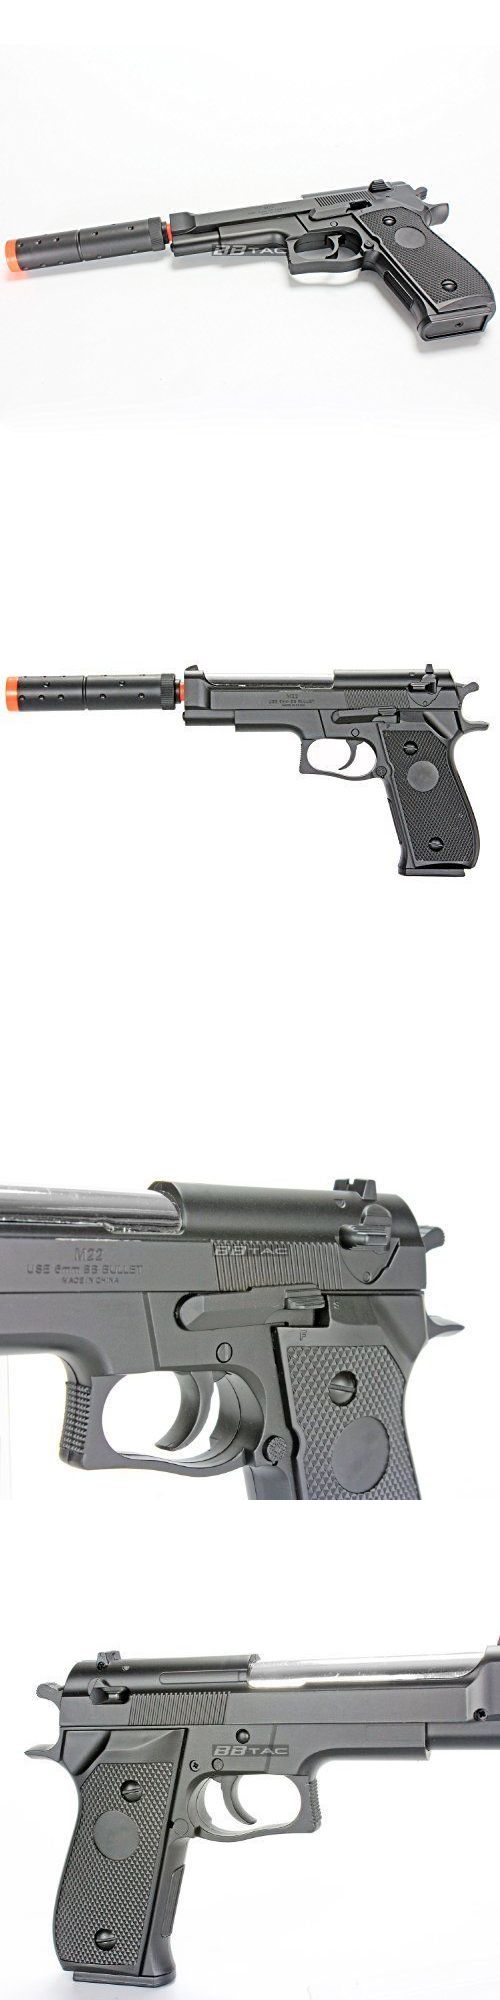 Pistol 160923: Airsoft Pistol Spring Loaded Handgun Airsoft With 2 Tactical Holster Case New BUY IT NOW ONLY: $59.0